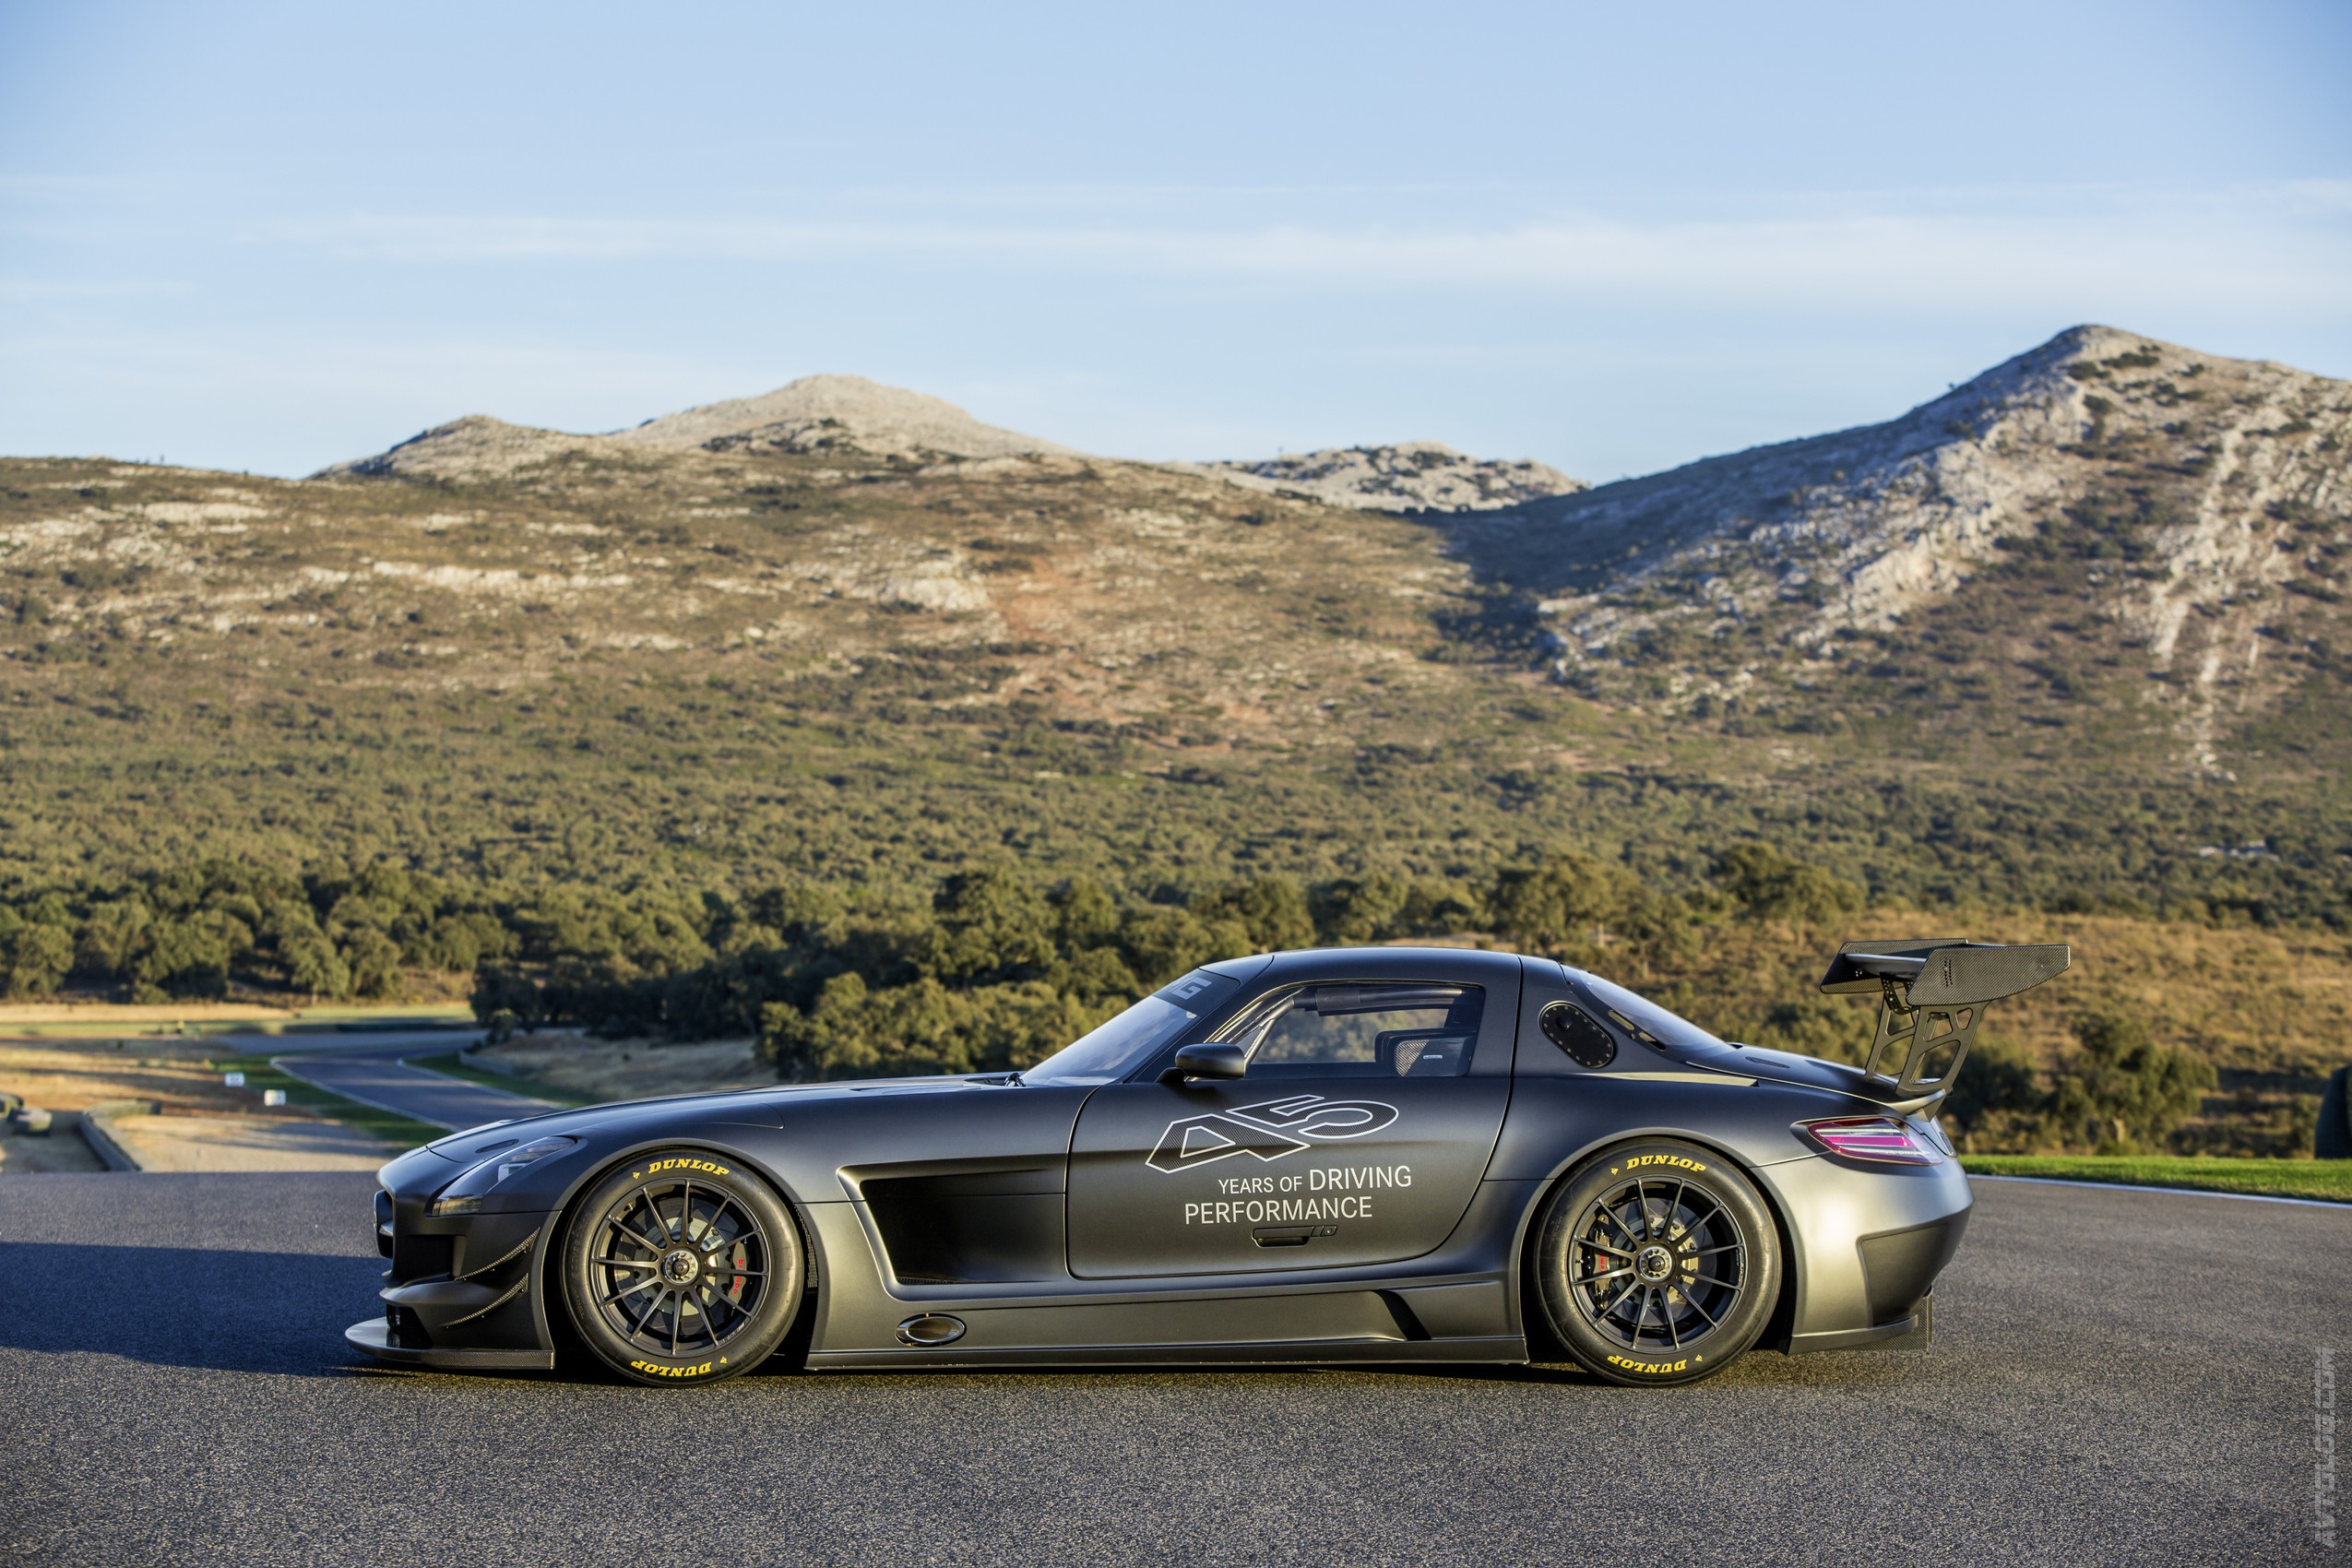 2018 Mercedes Benz SLS AMG GT photo - 3